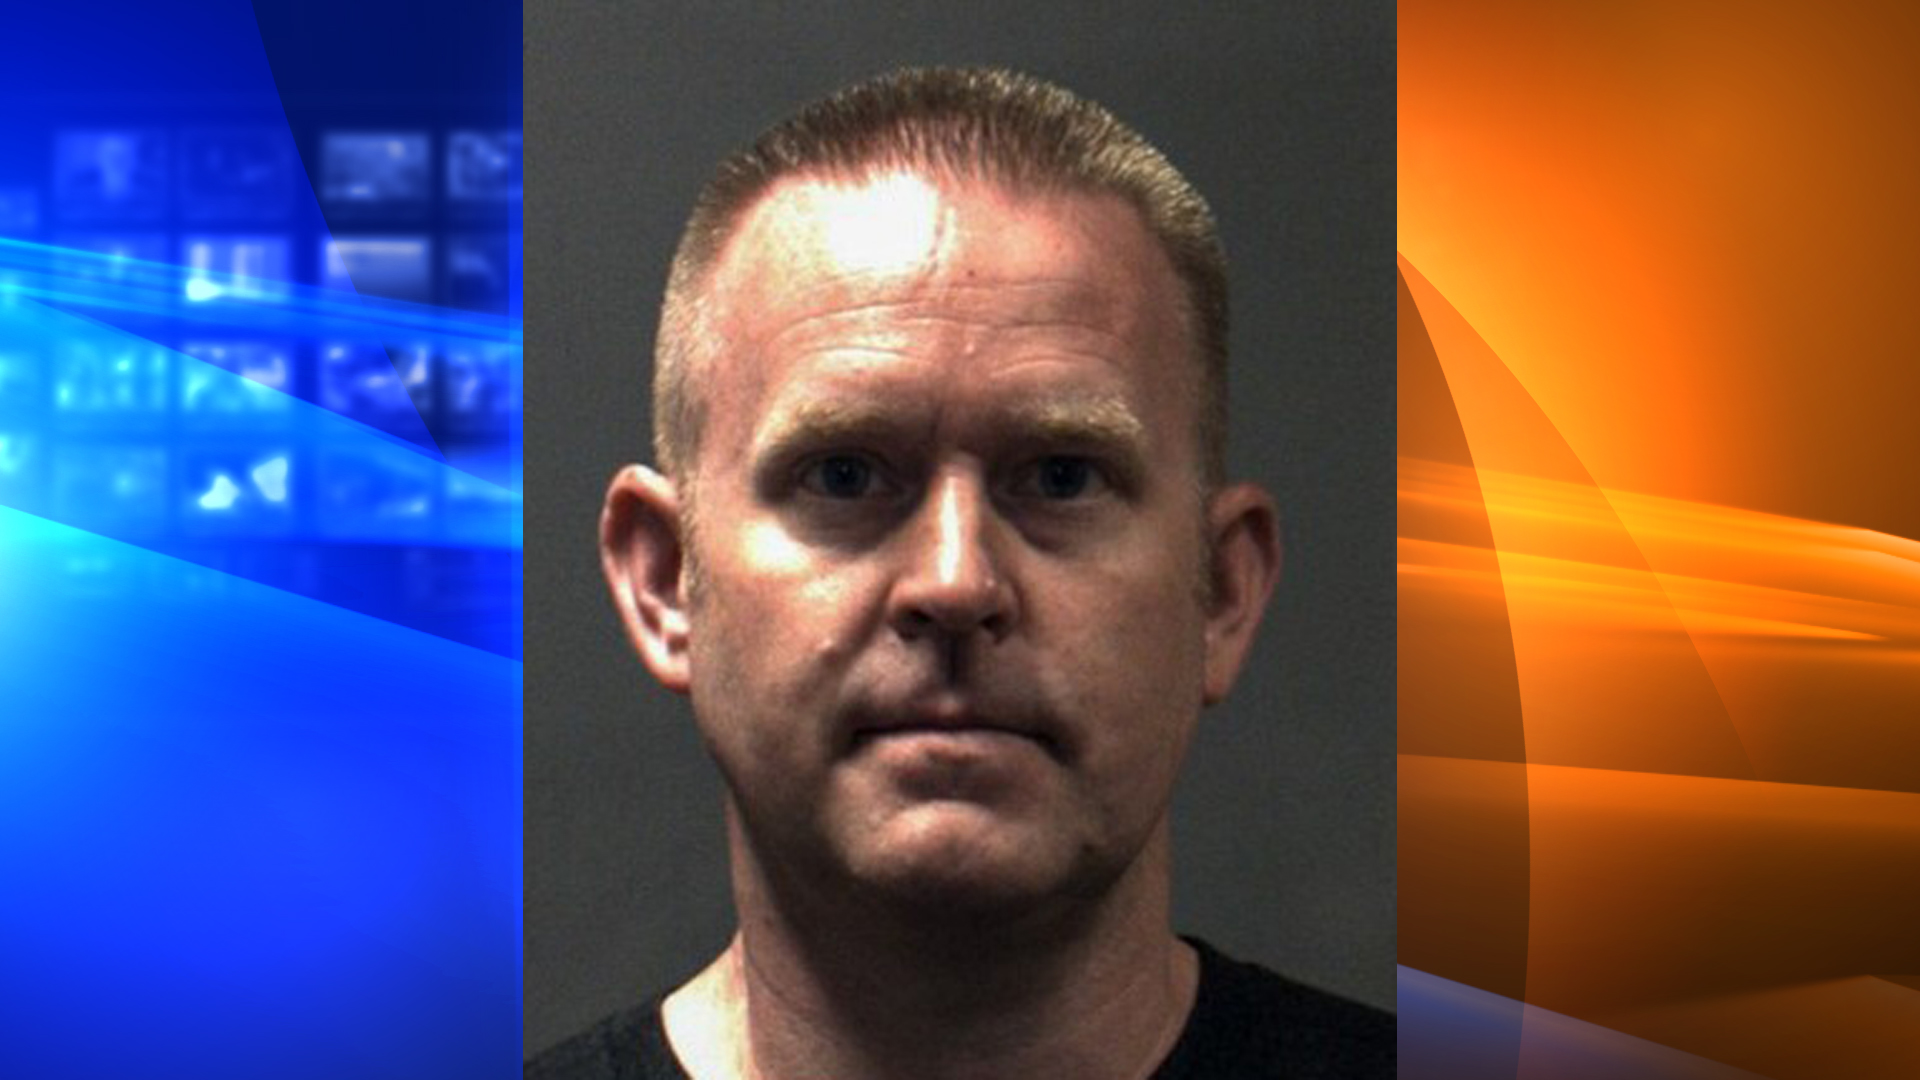 Marc Goodwin is seen in a photo released by the Fontana Police Department on June 24, 2021.